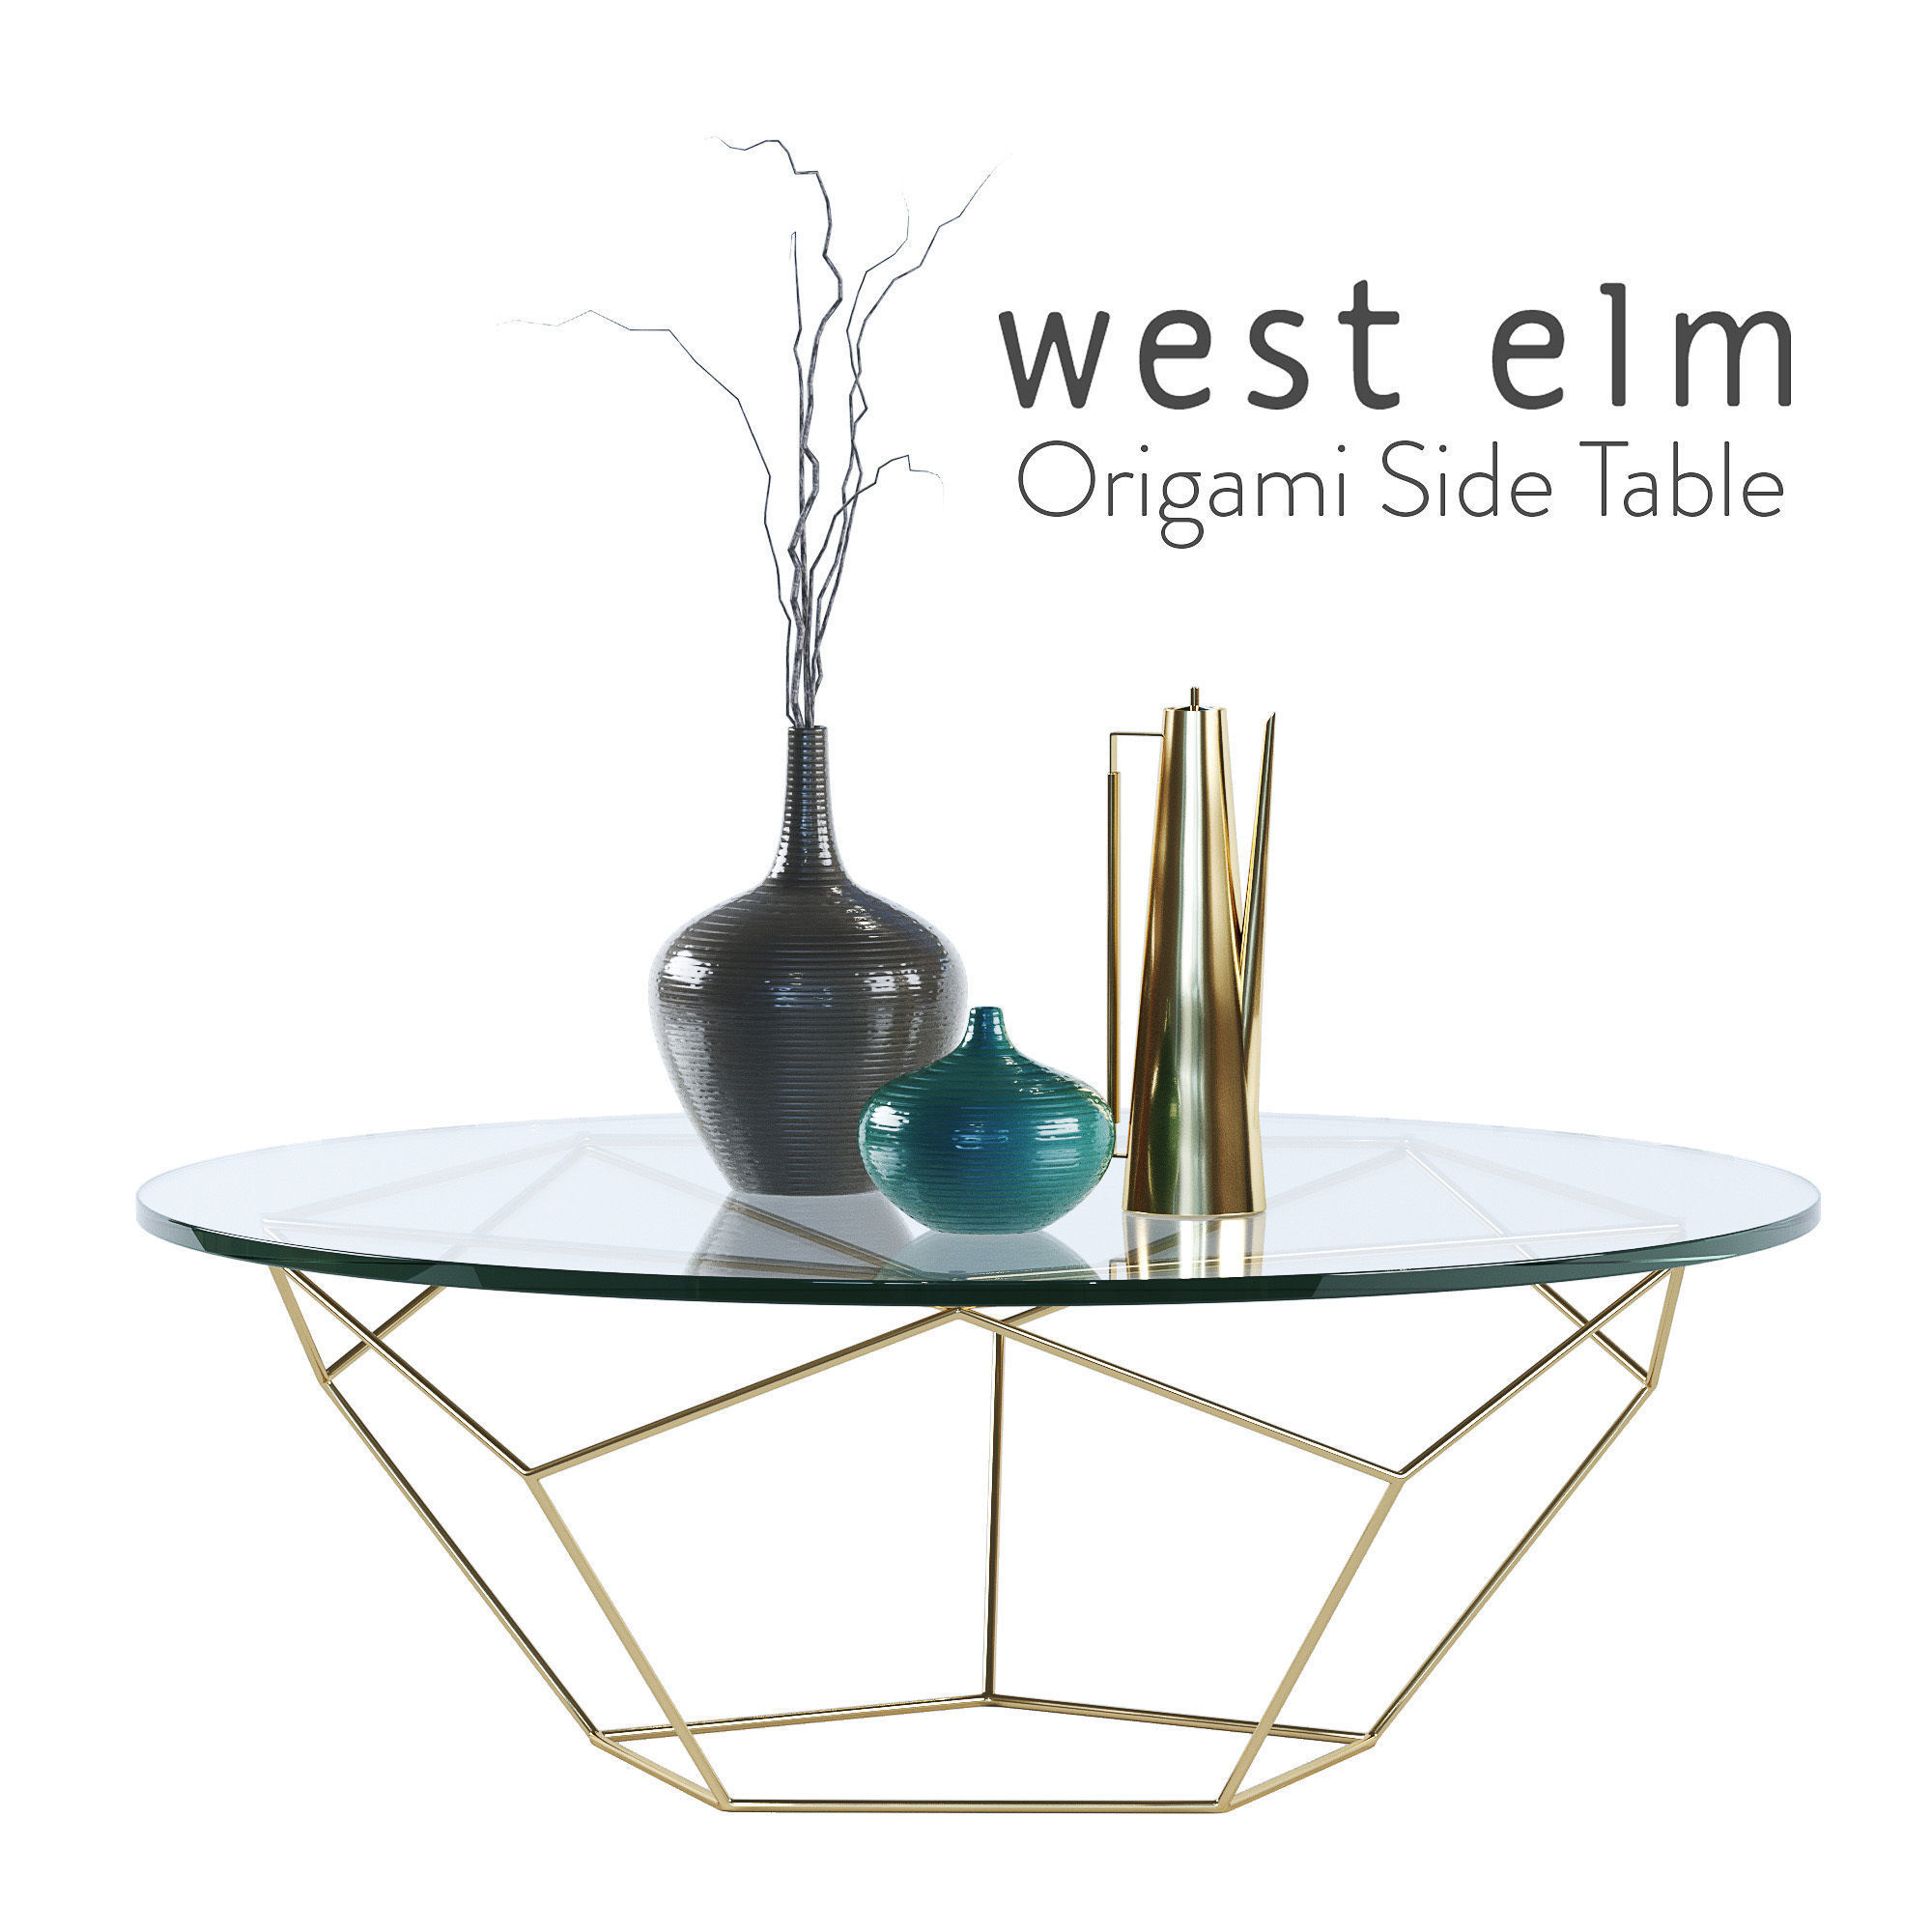 Origami Coffee Table West Elm Origami Coffee Table Review ... | 2000x2000